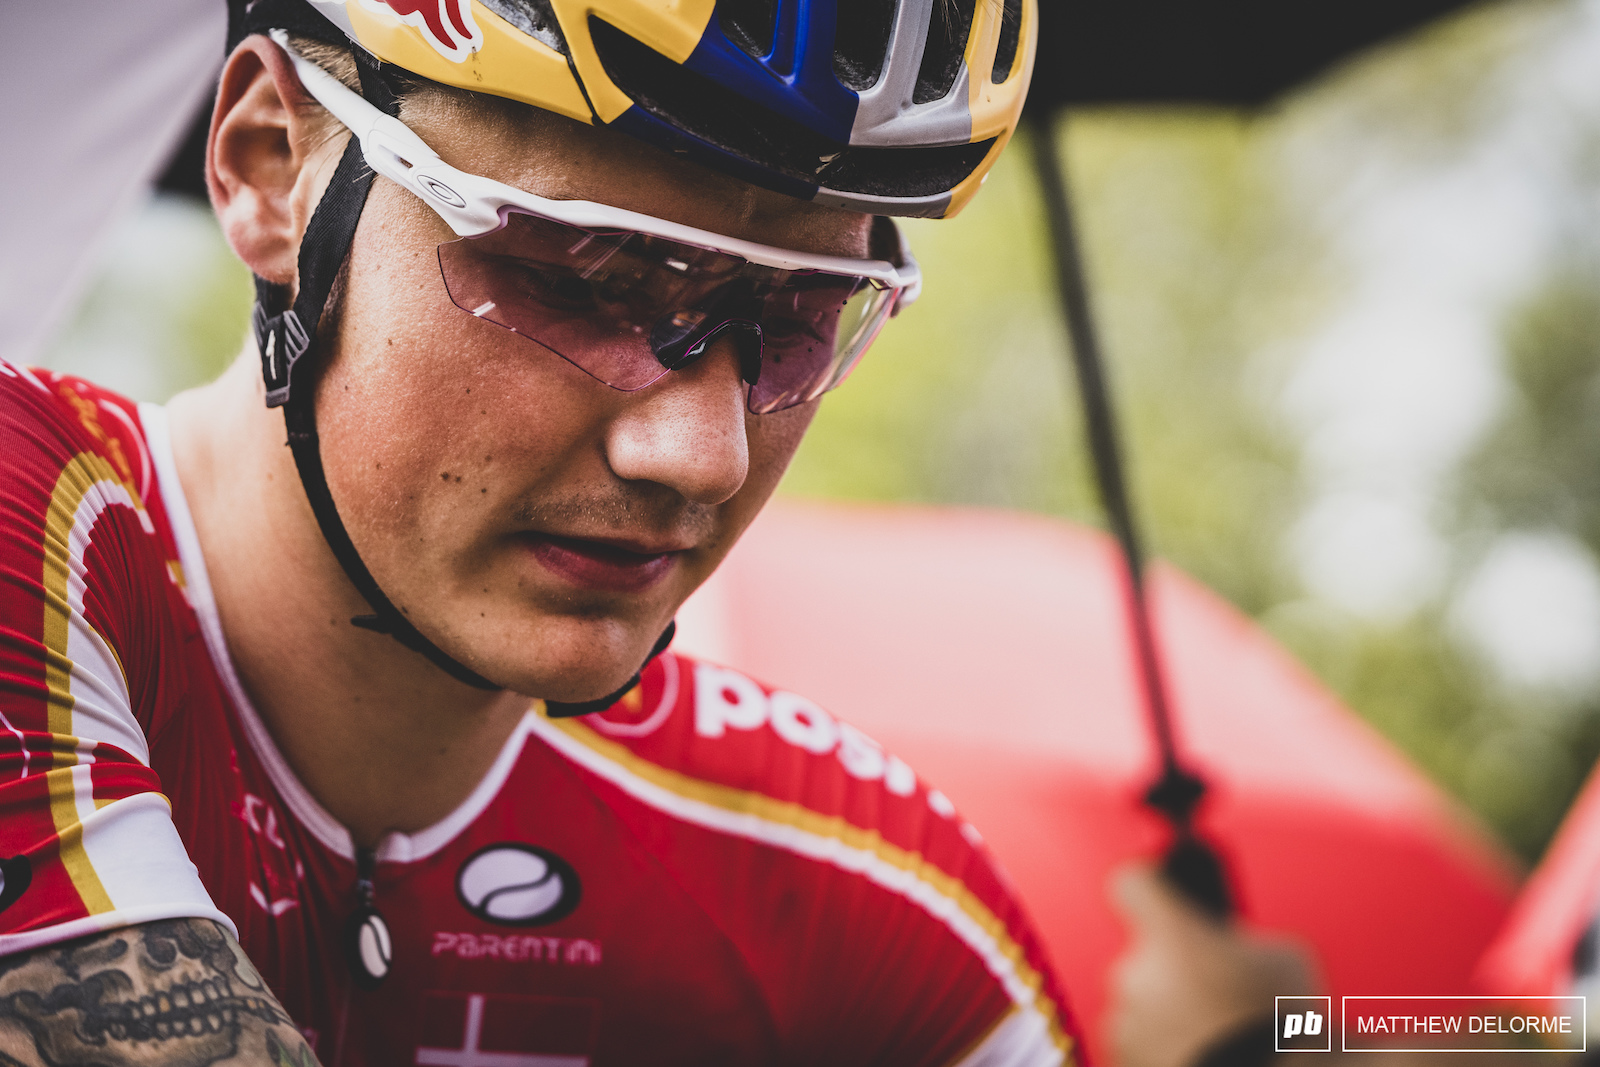 The day would end in heartbreak for Simon Andreassen.